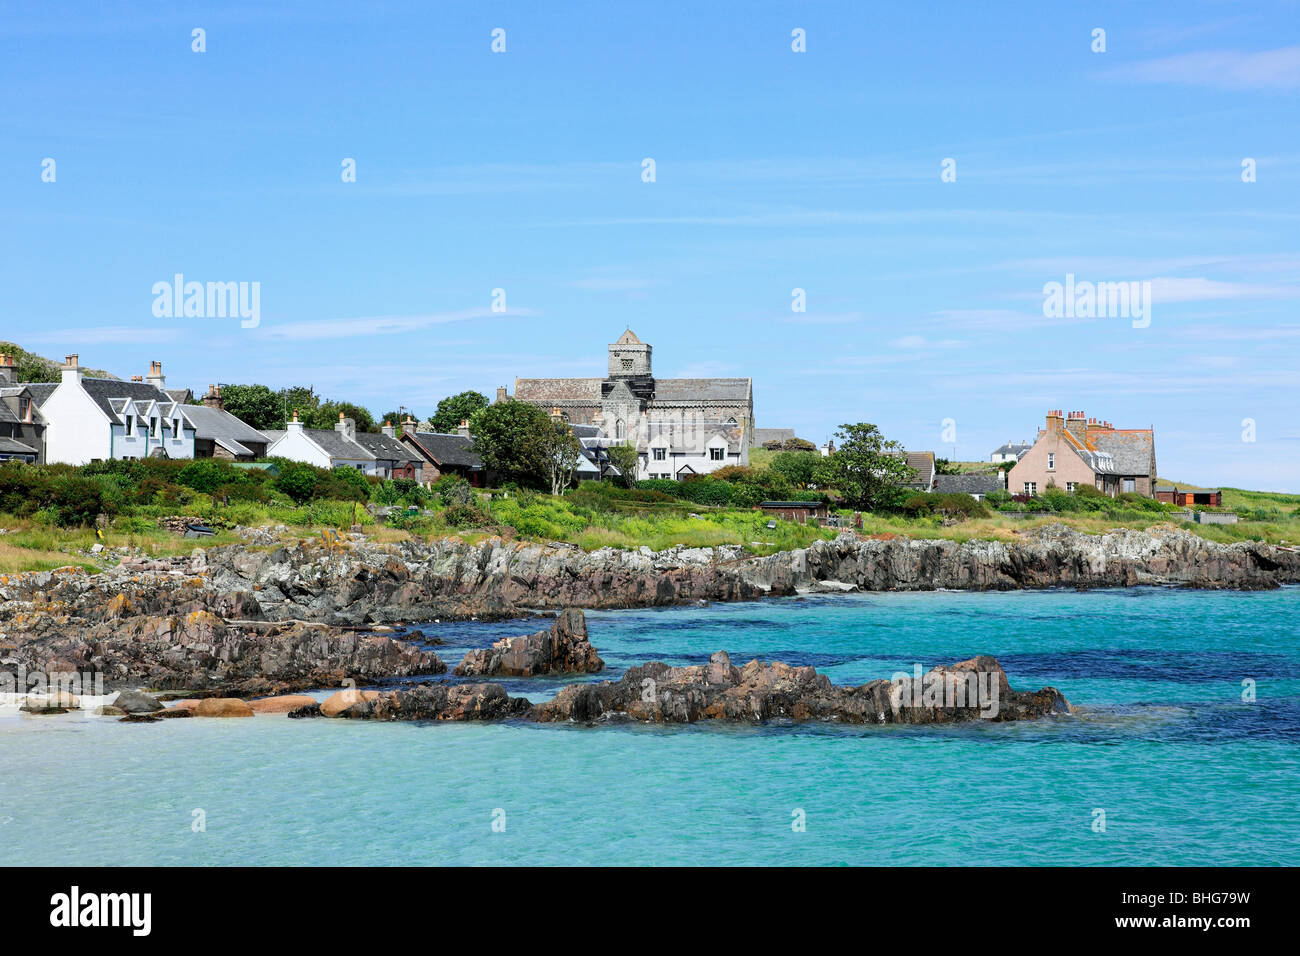 Coast of iona with view of abbey - Stock Image